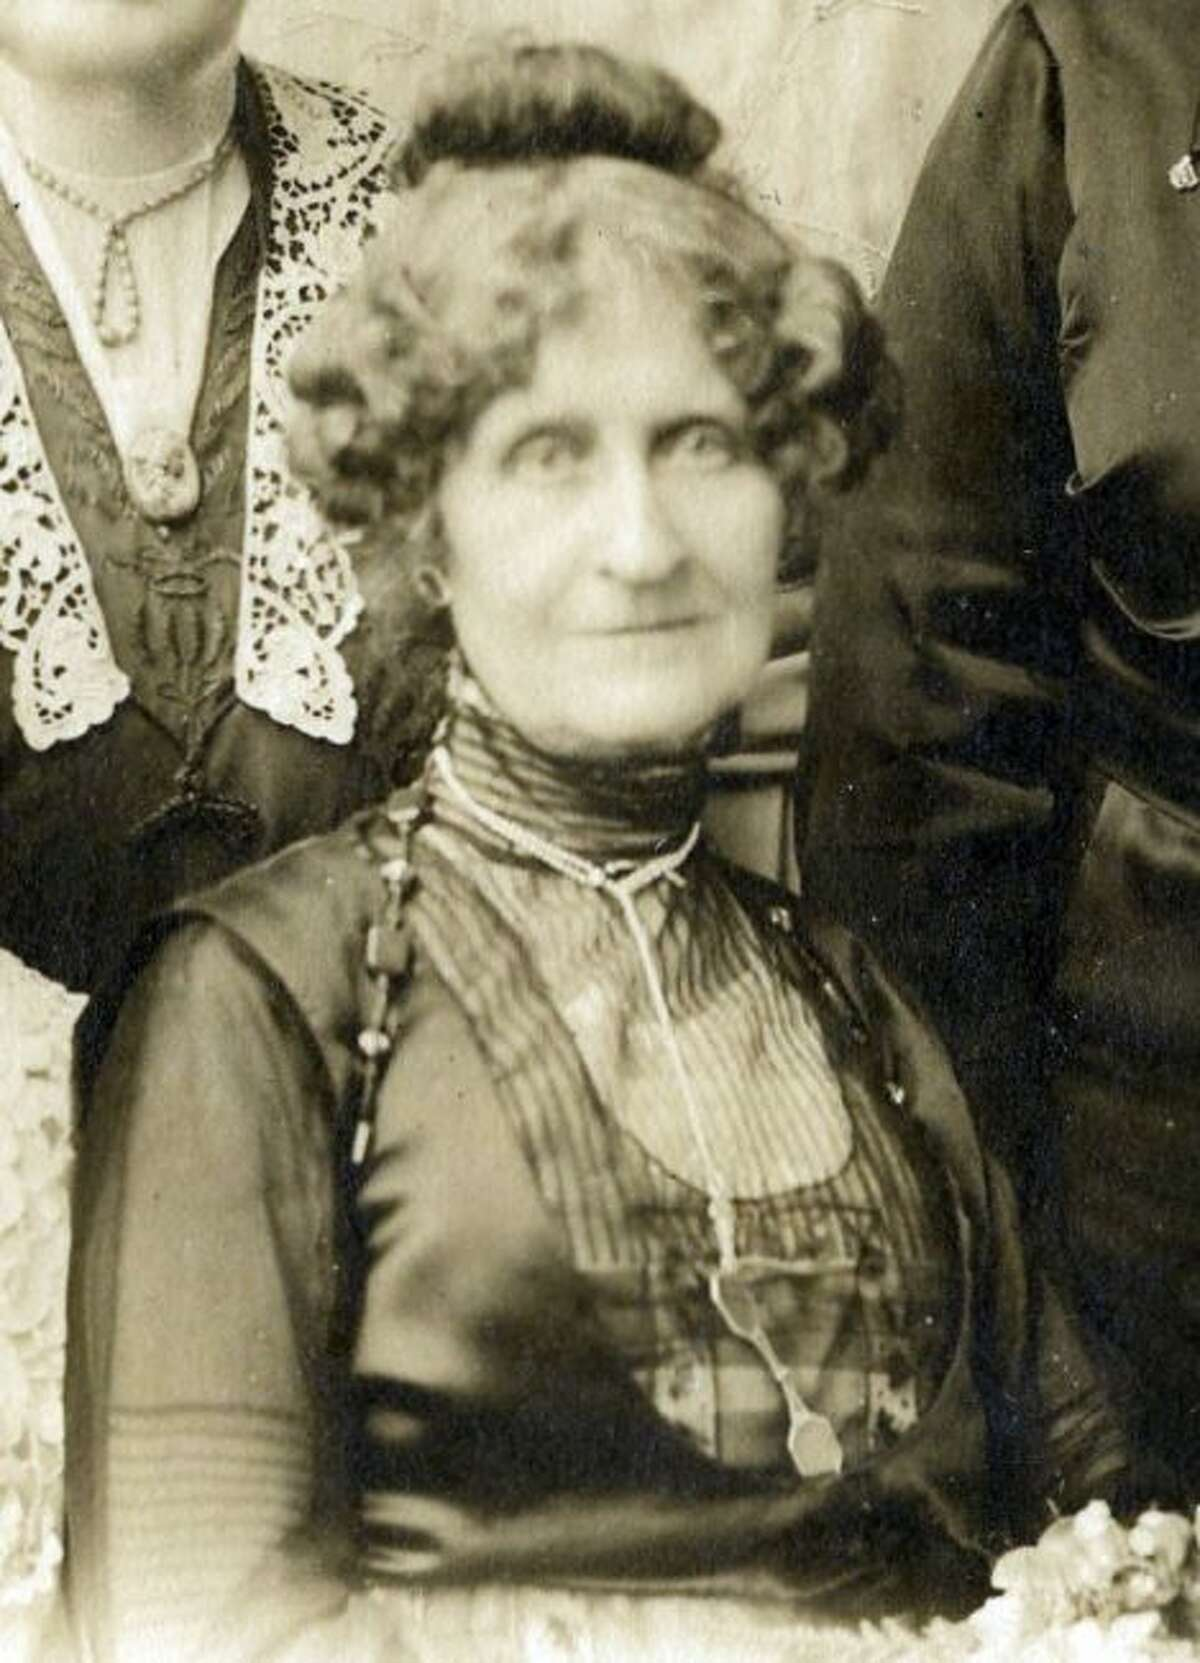 Martha Filer was one of the lesser-known members of the Filer family. She passed away in 1926 in Paris, France.